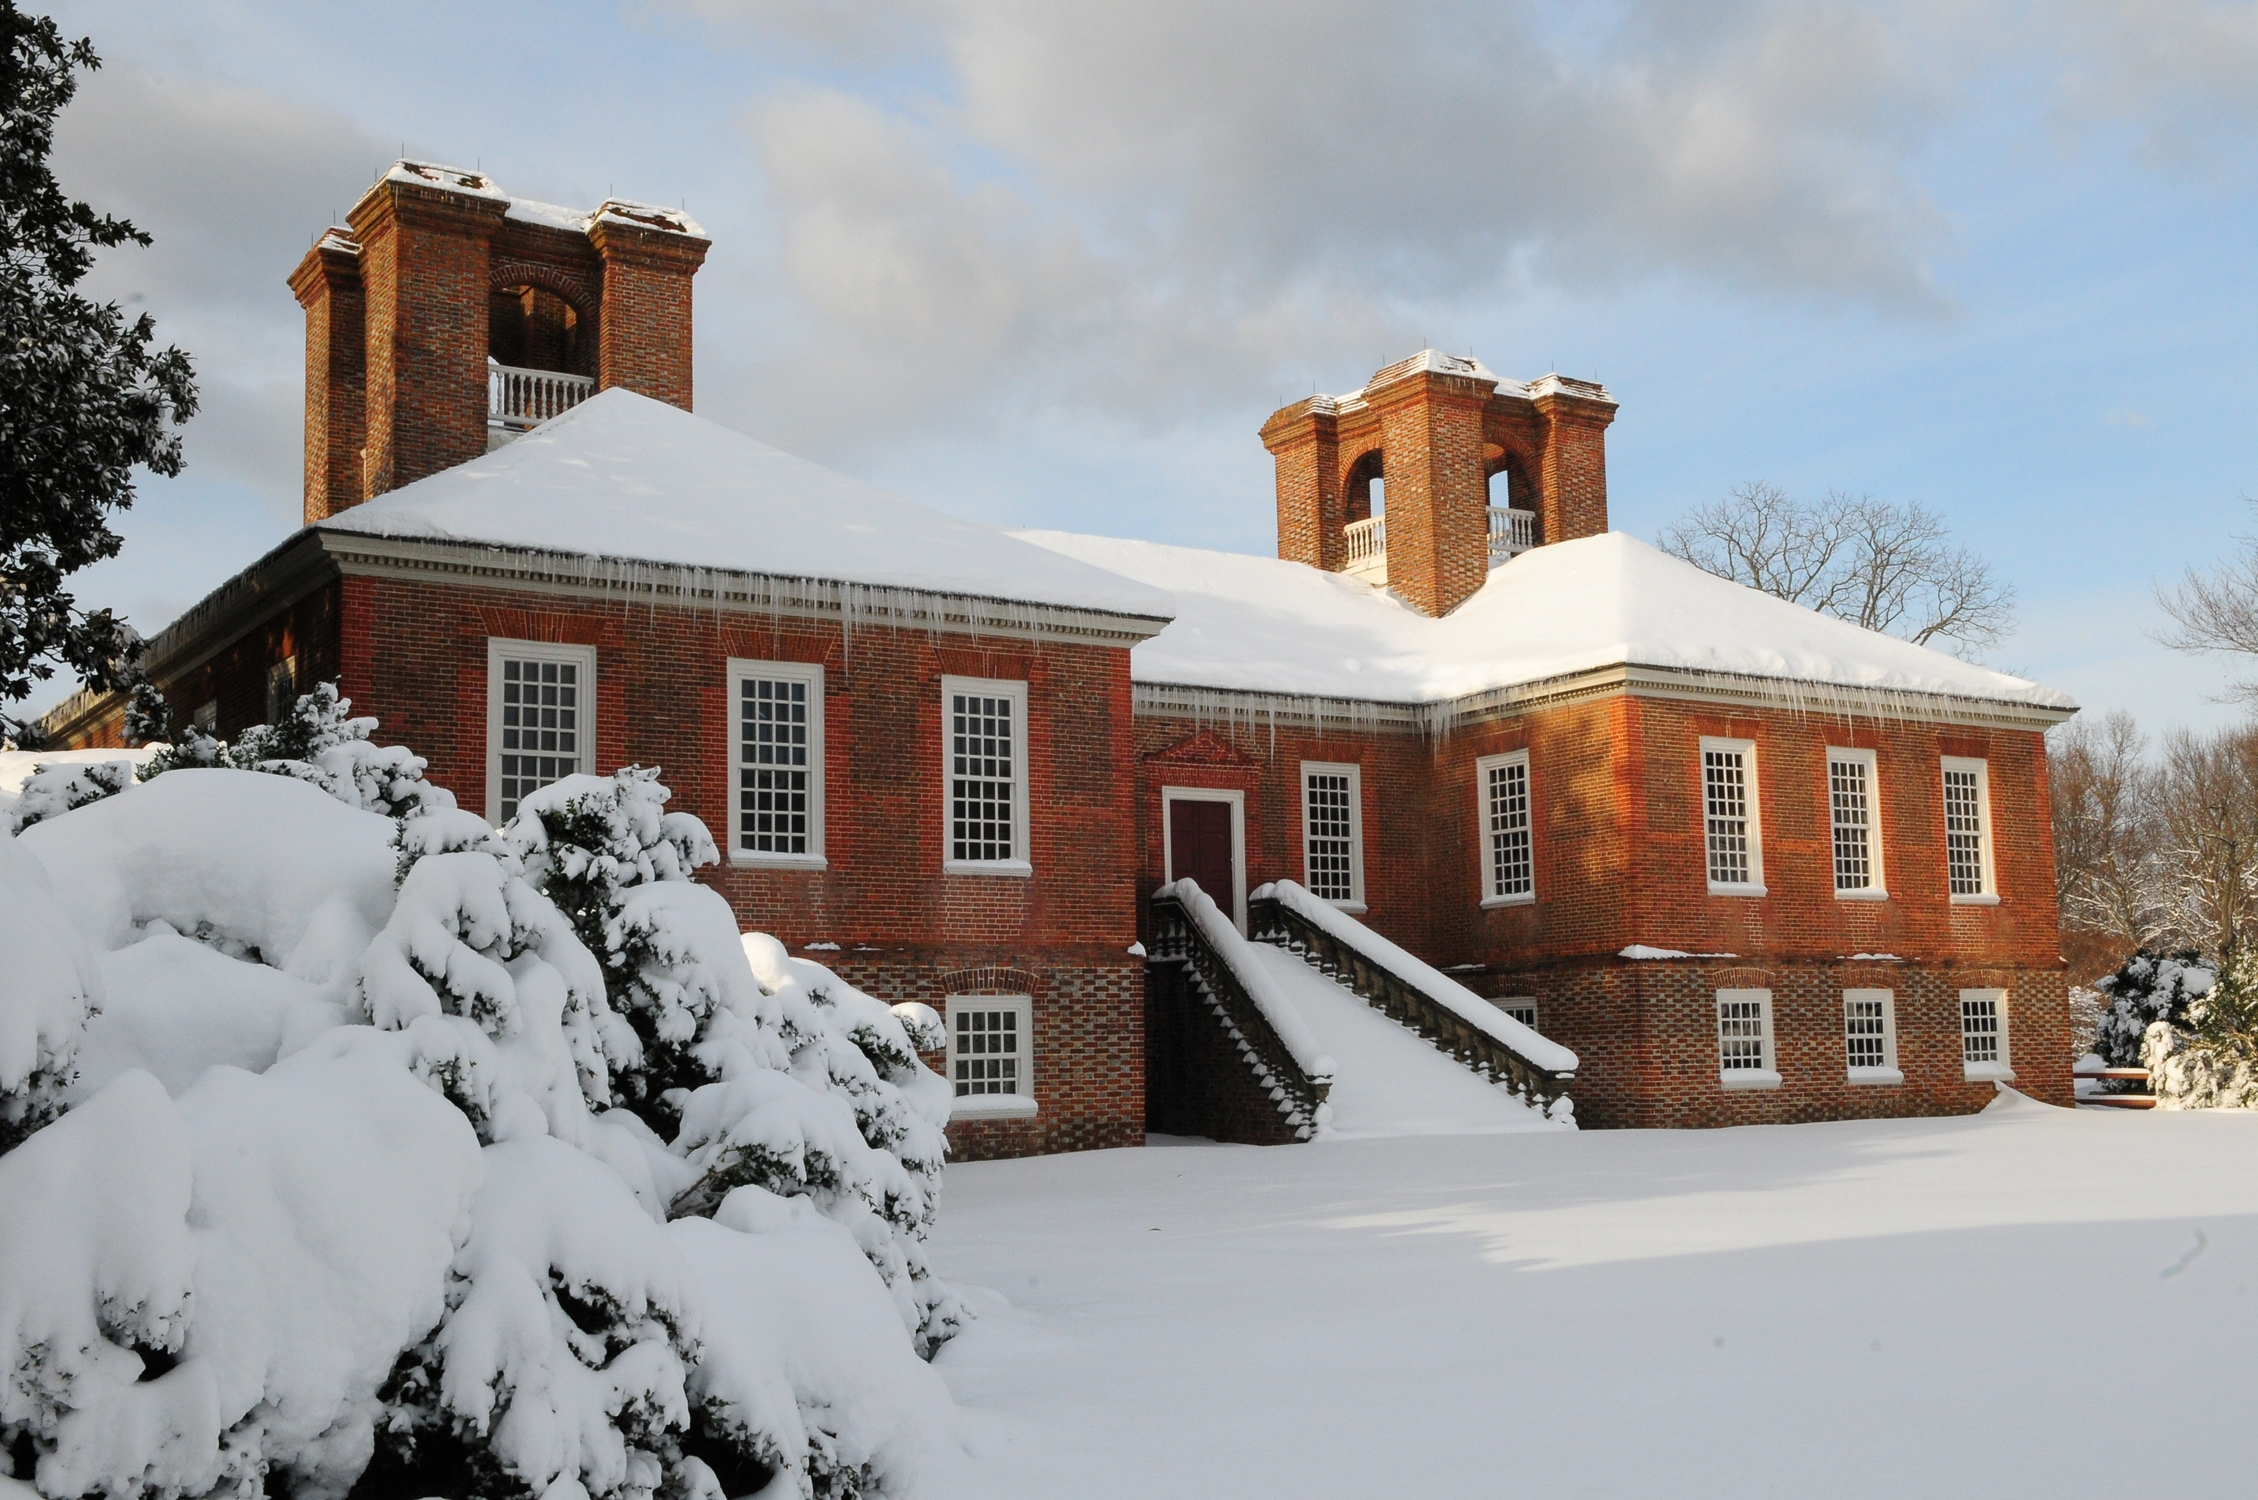 The Great House in the winter.